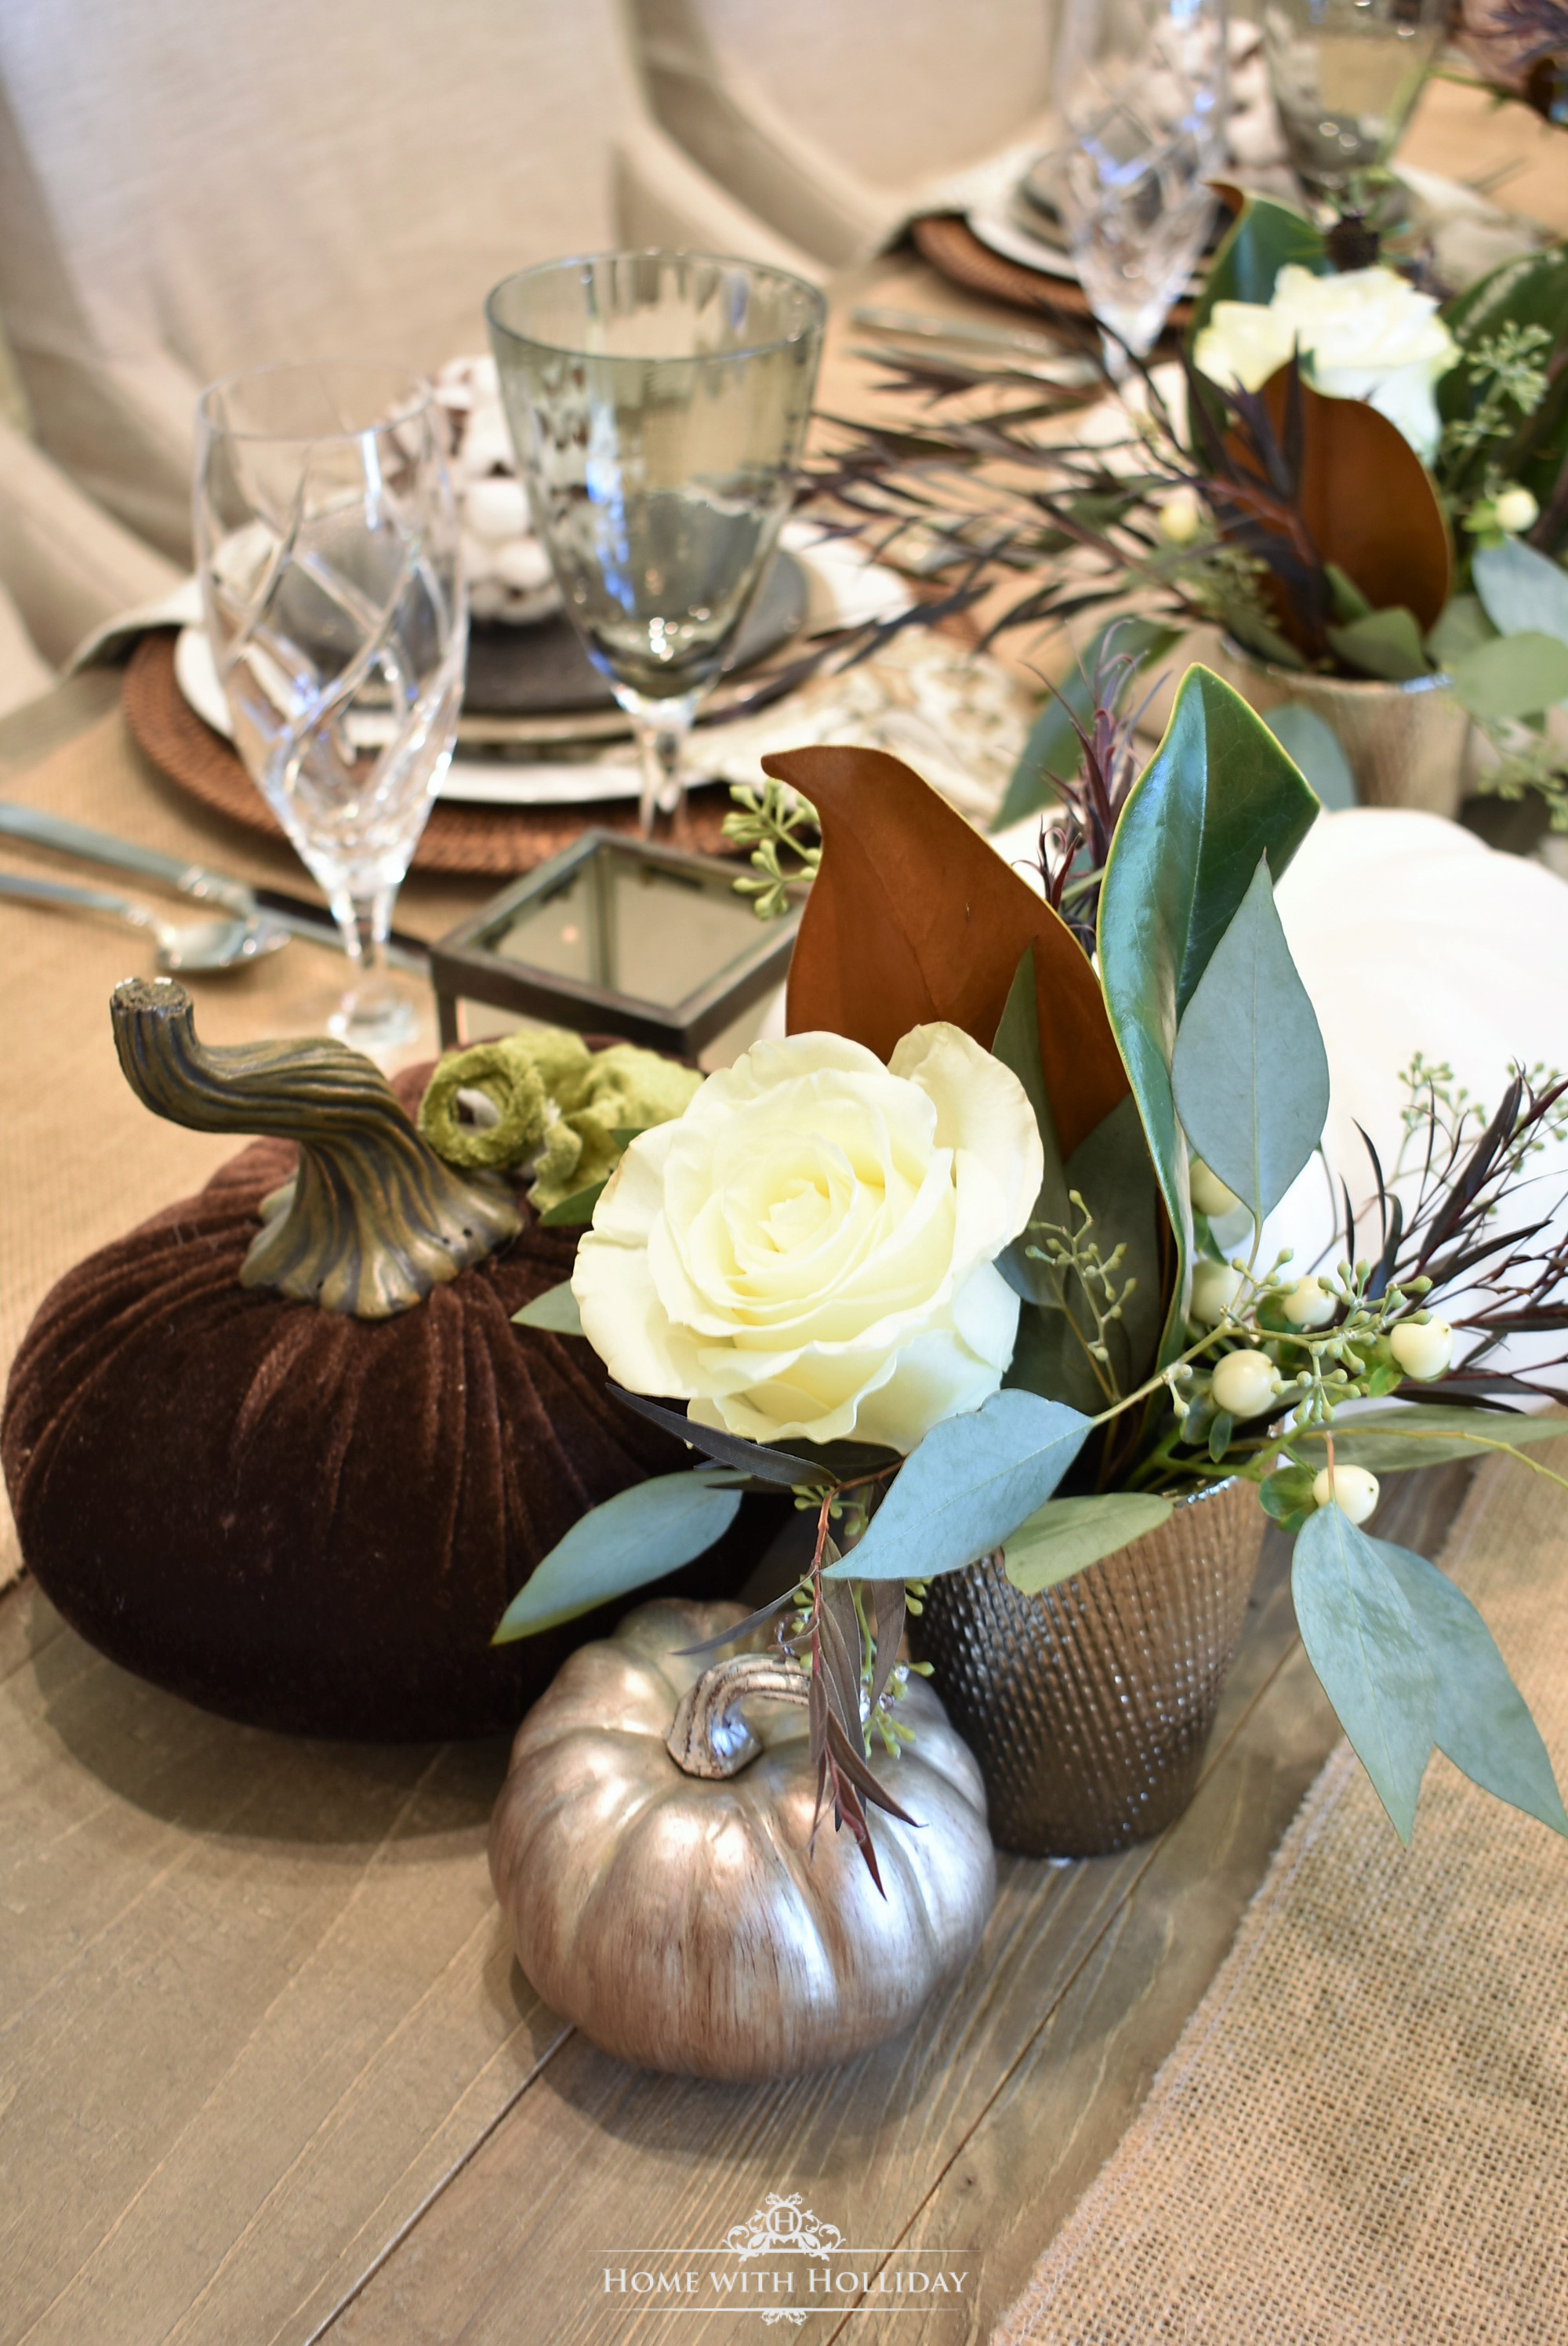 Details of a Fall Table Setting with Brown and White Pumpkins